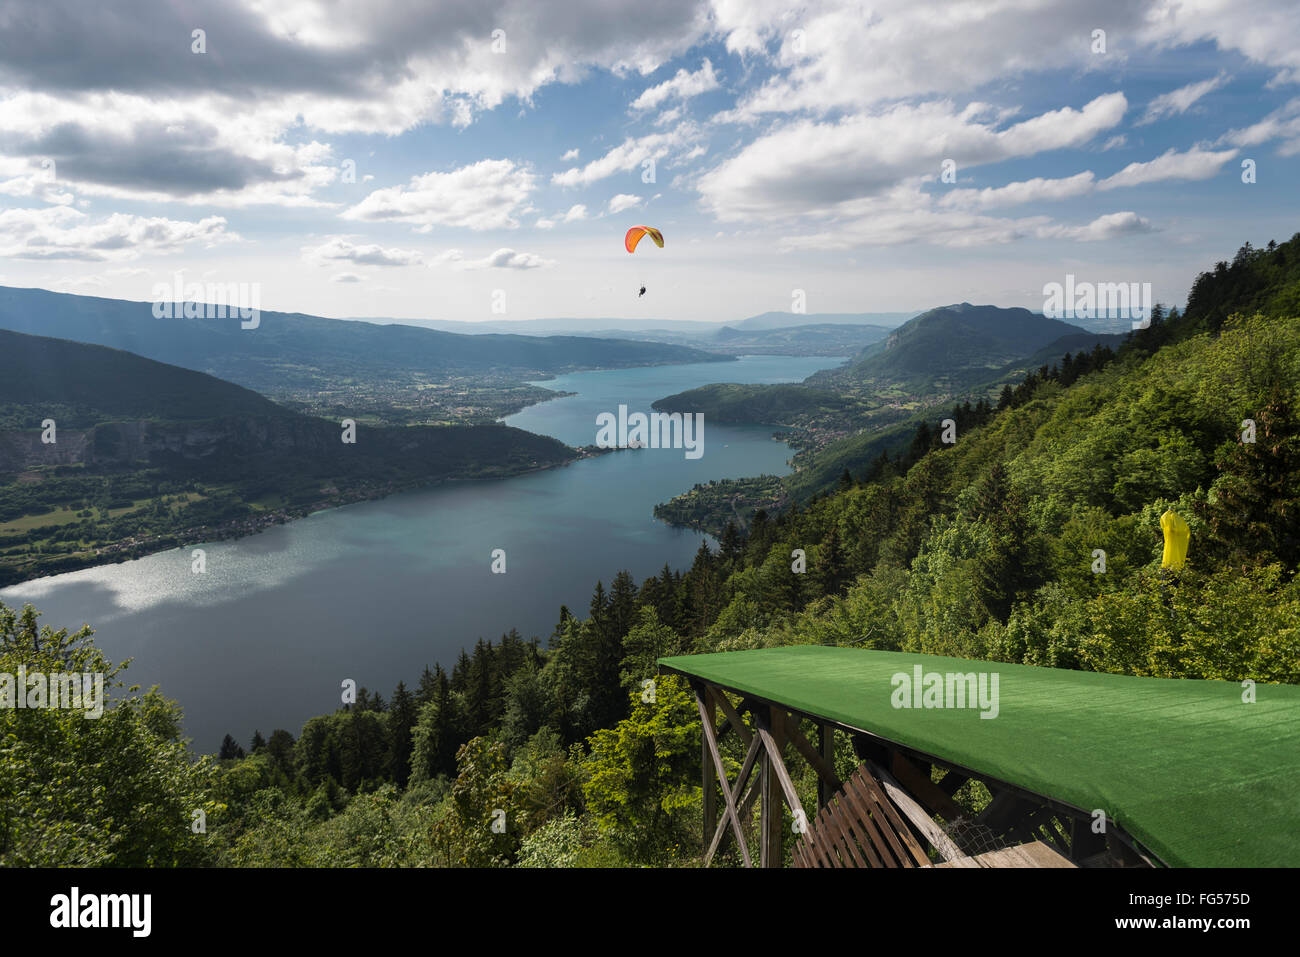 View from the paraglider launch pad at the Col de la Forclaz on Lake Annecy and surrounding mountains, Savoy,France - Stock Image